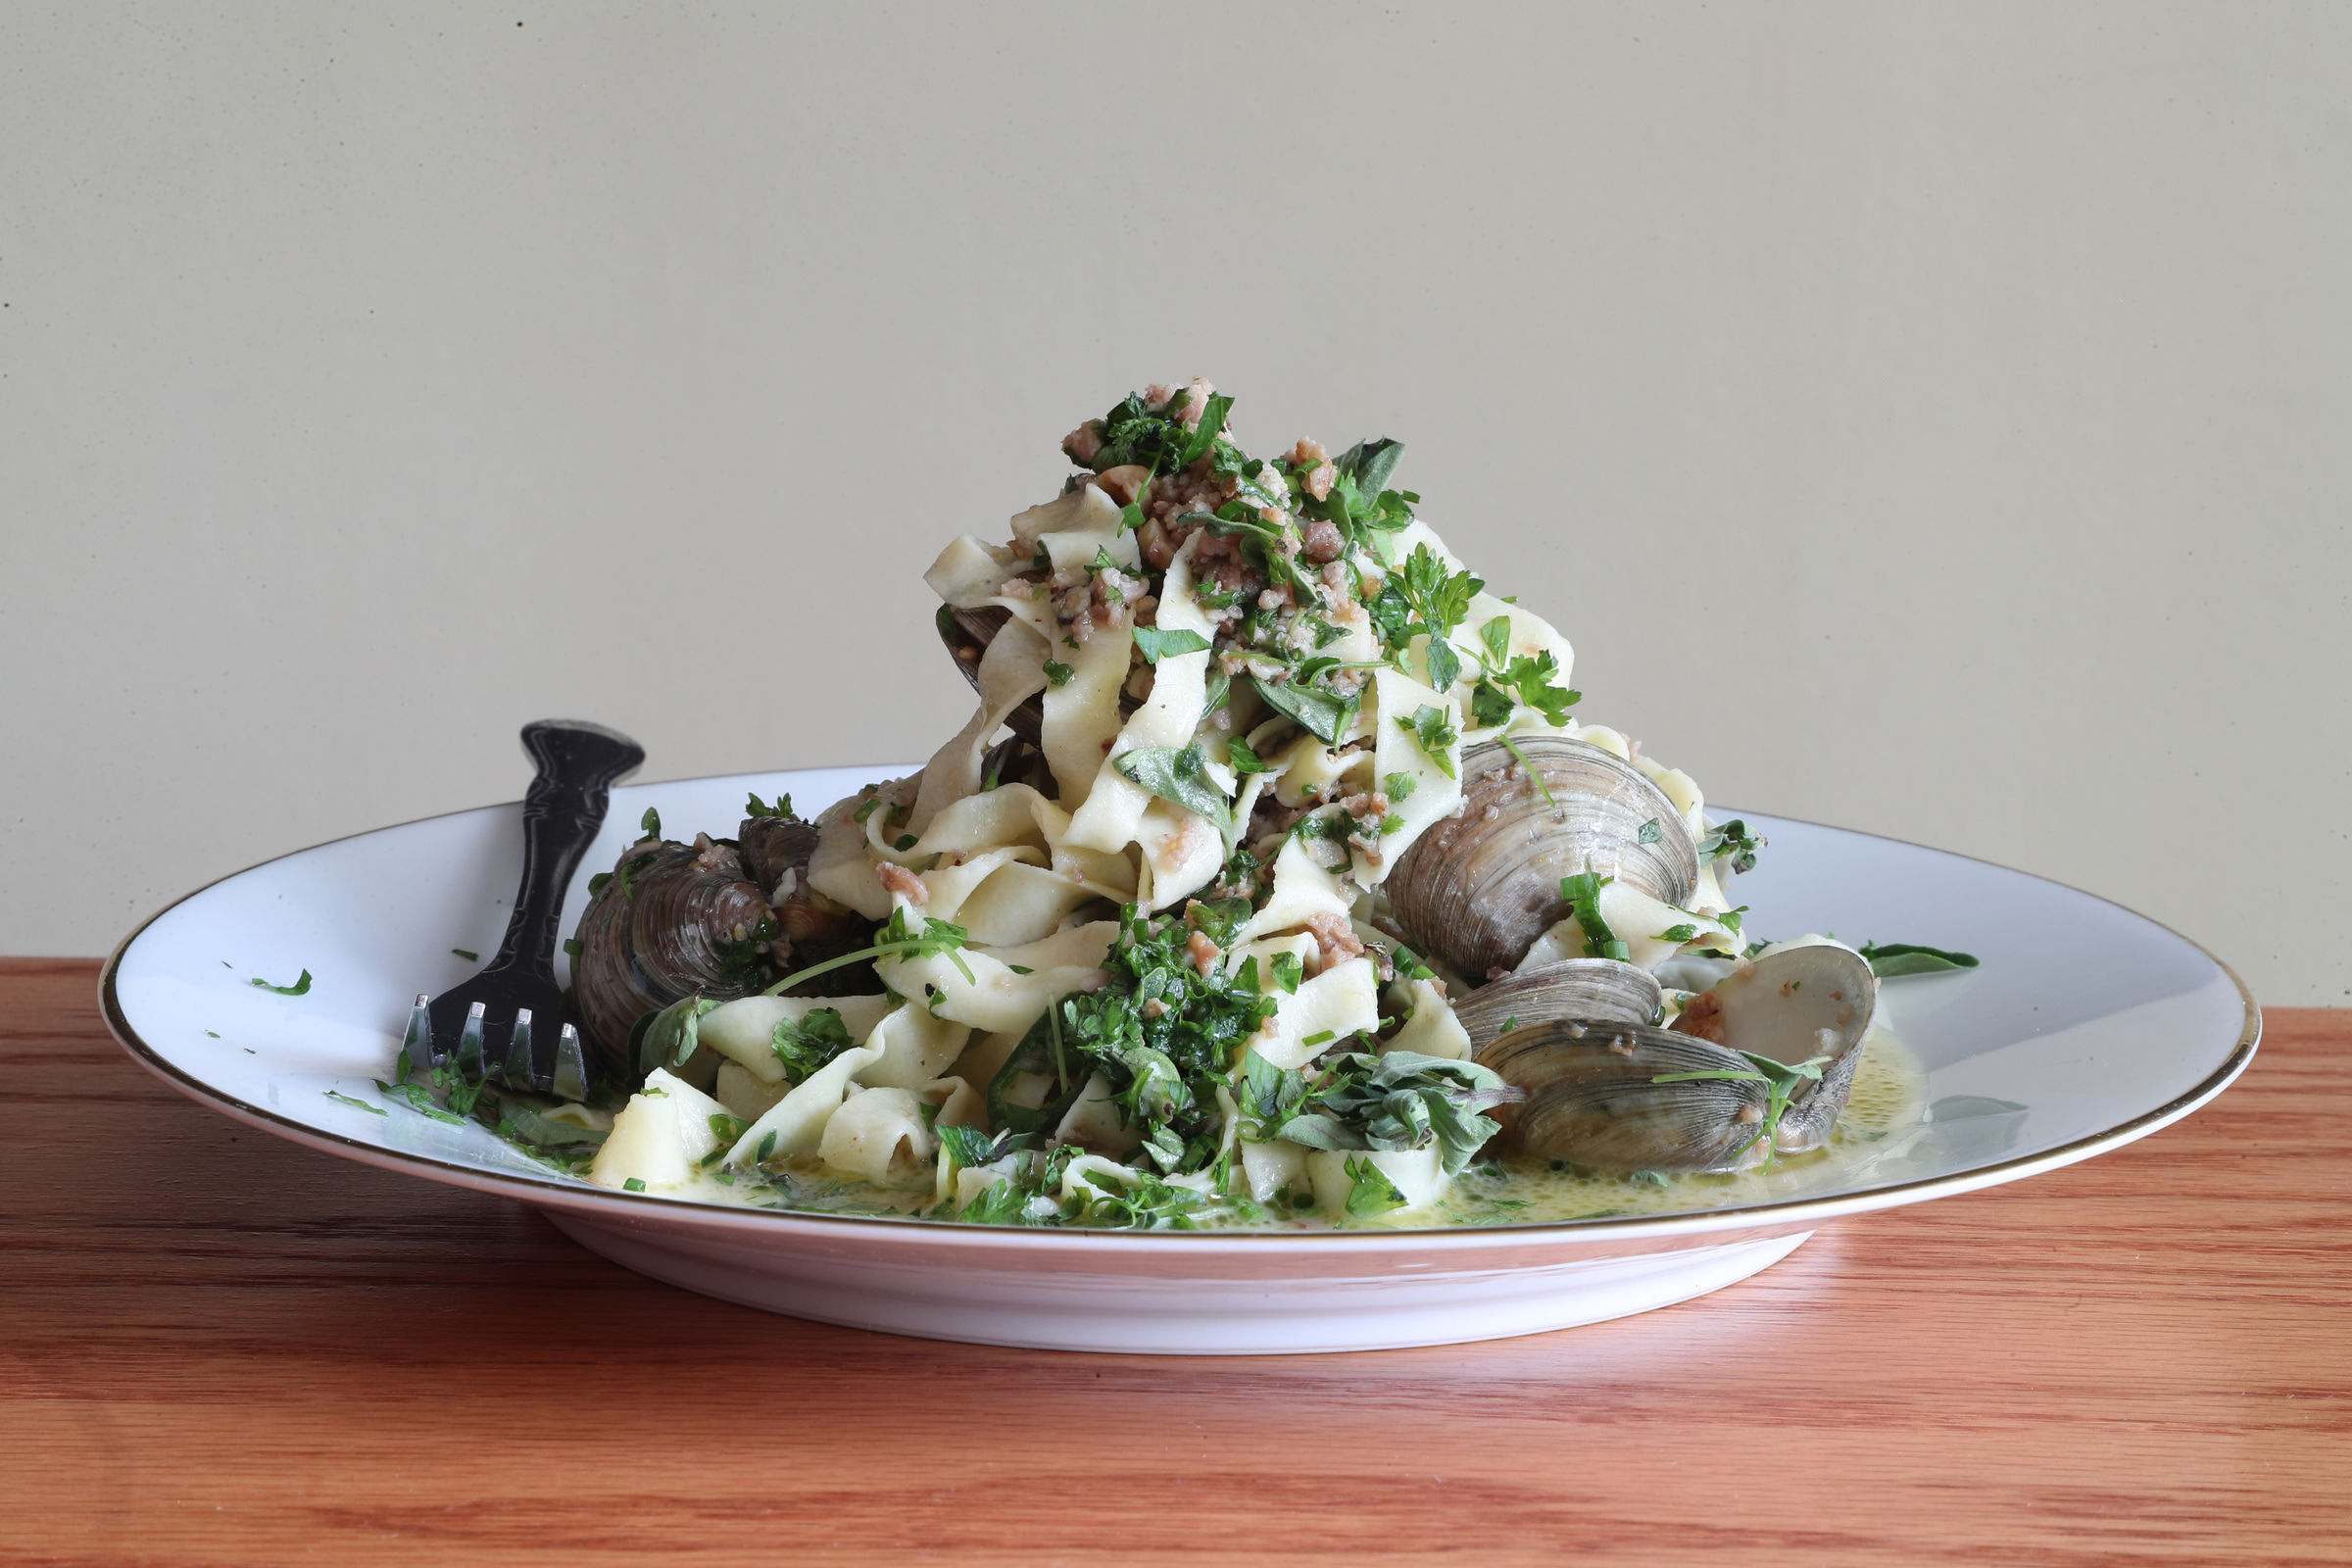 The Fettucinie Vongole at Park Place Café.